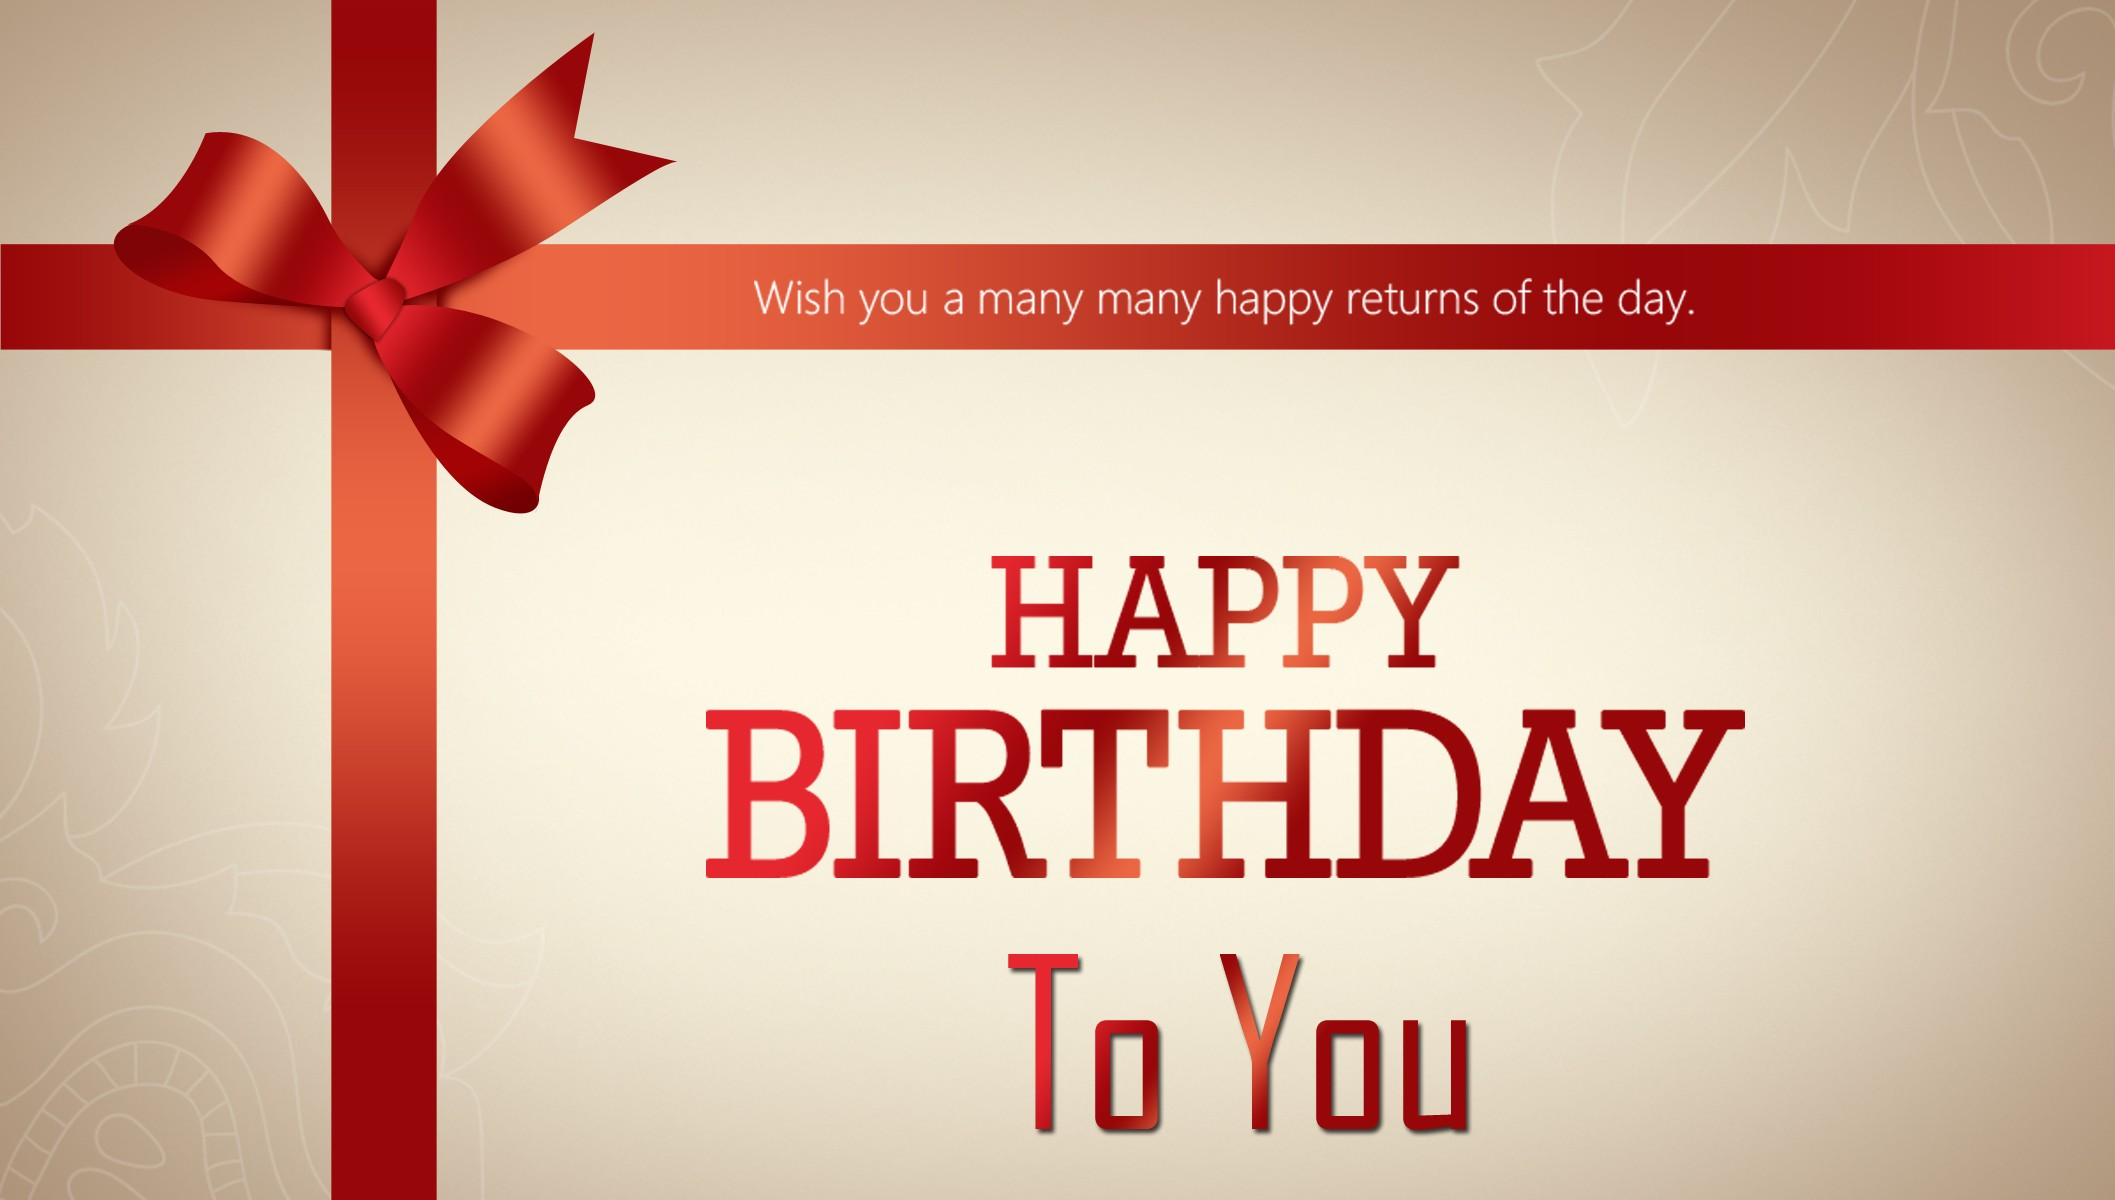 professional birthday greeting messages ; Happy-Birthday-Wishes-Images-Hd-15